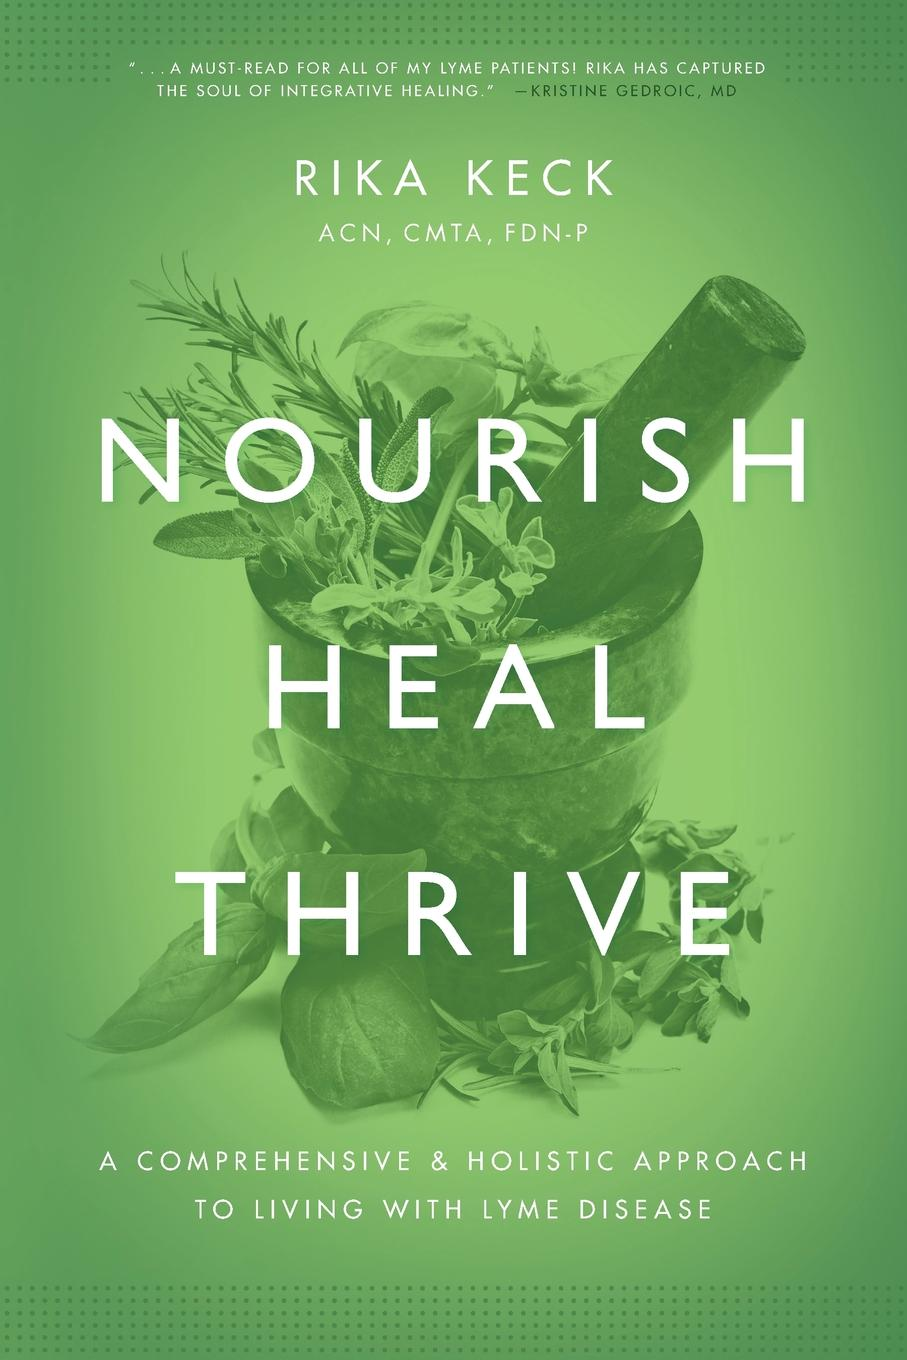 Rika K. Keck Nourish, Heal, Thrive. A Comprehensive and Holistic Approach to Living with Lyme Disease sunil sood k lyme borreliosis in europe and north america epidemiology and clinical practice page 3 page 7